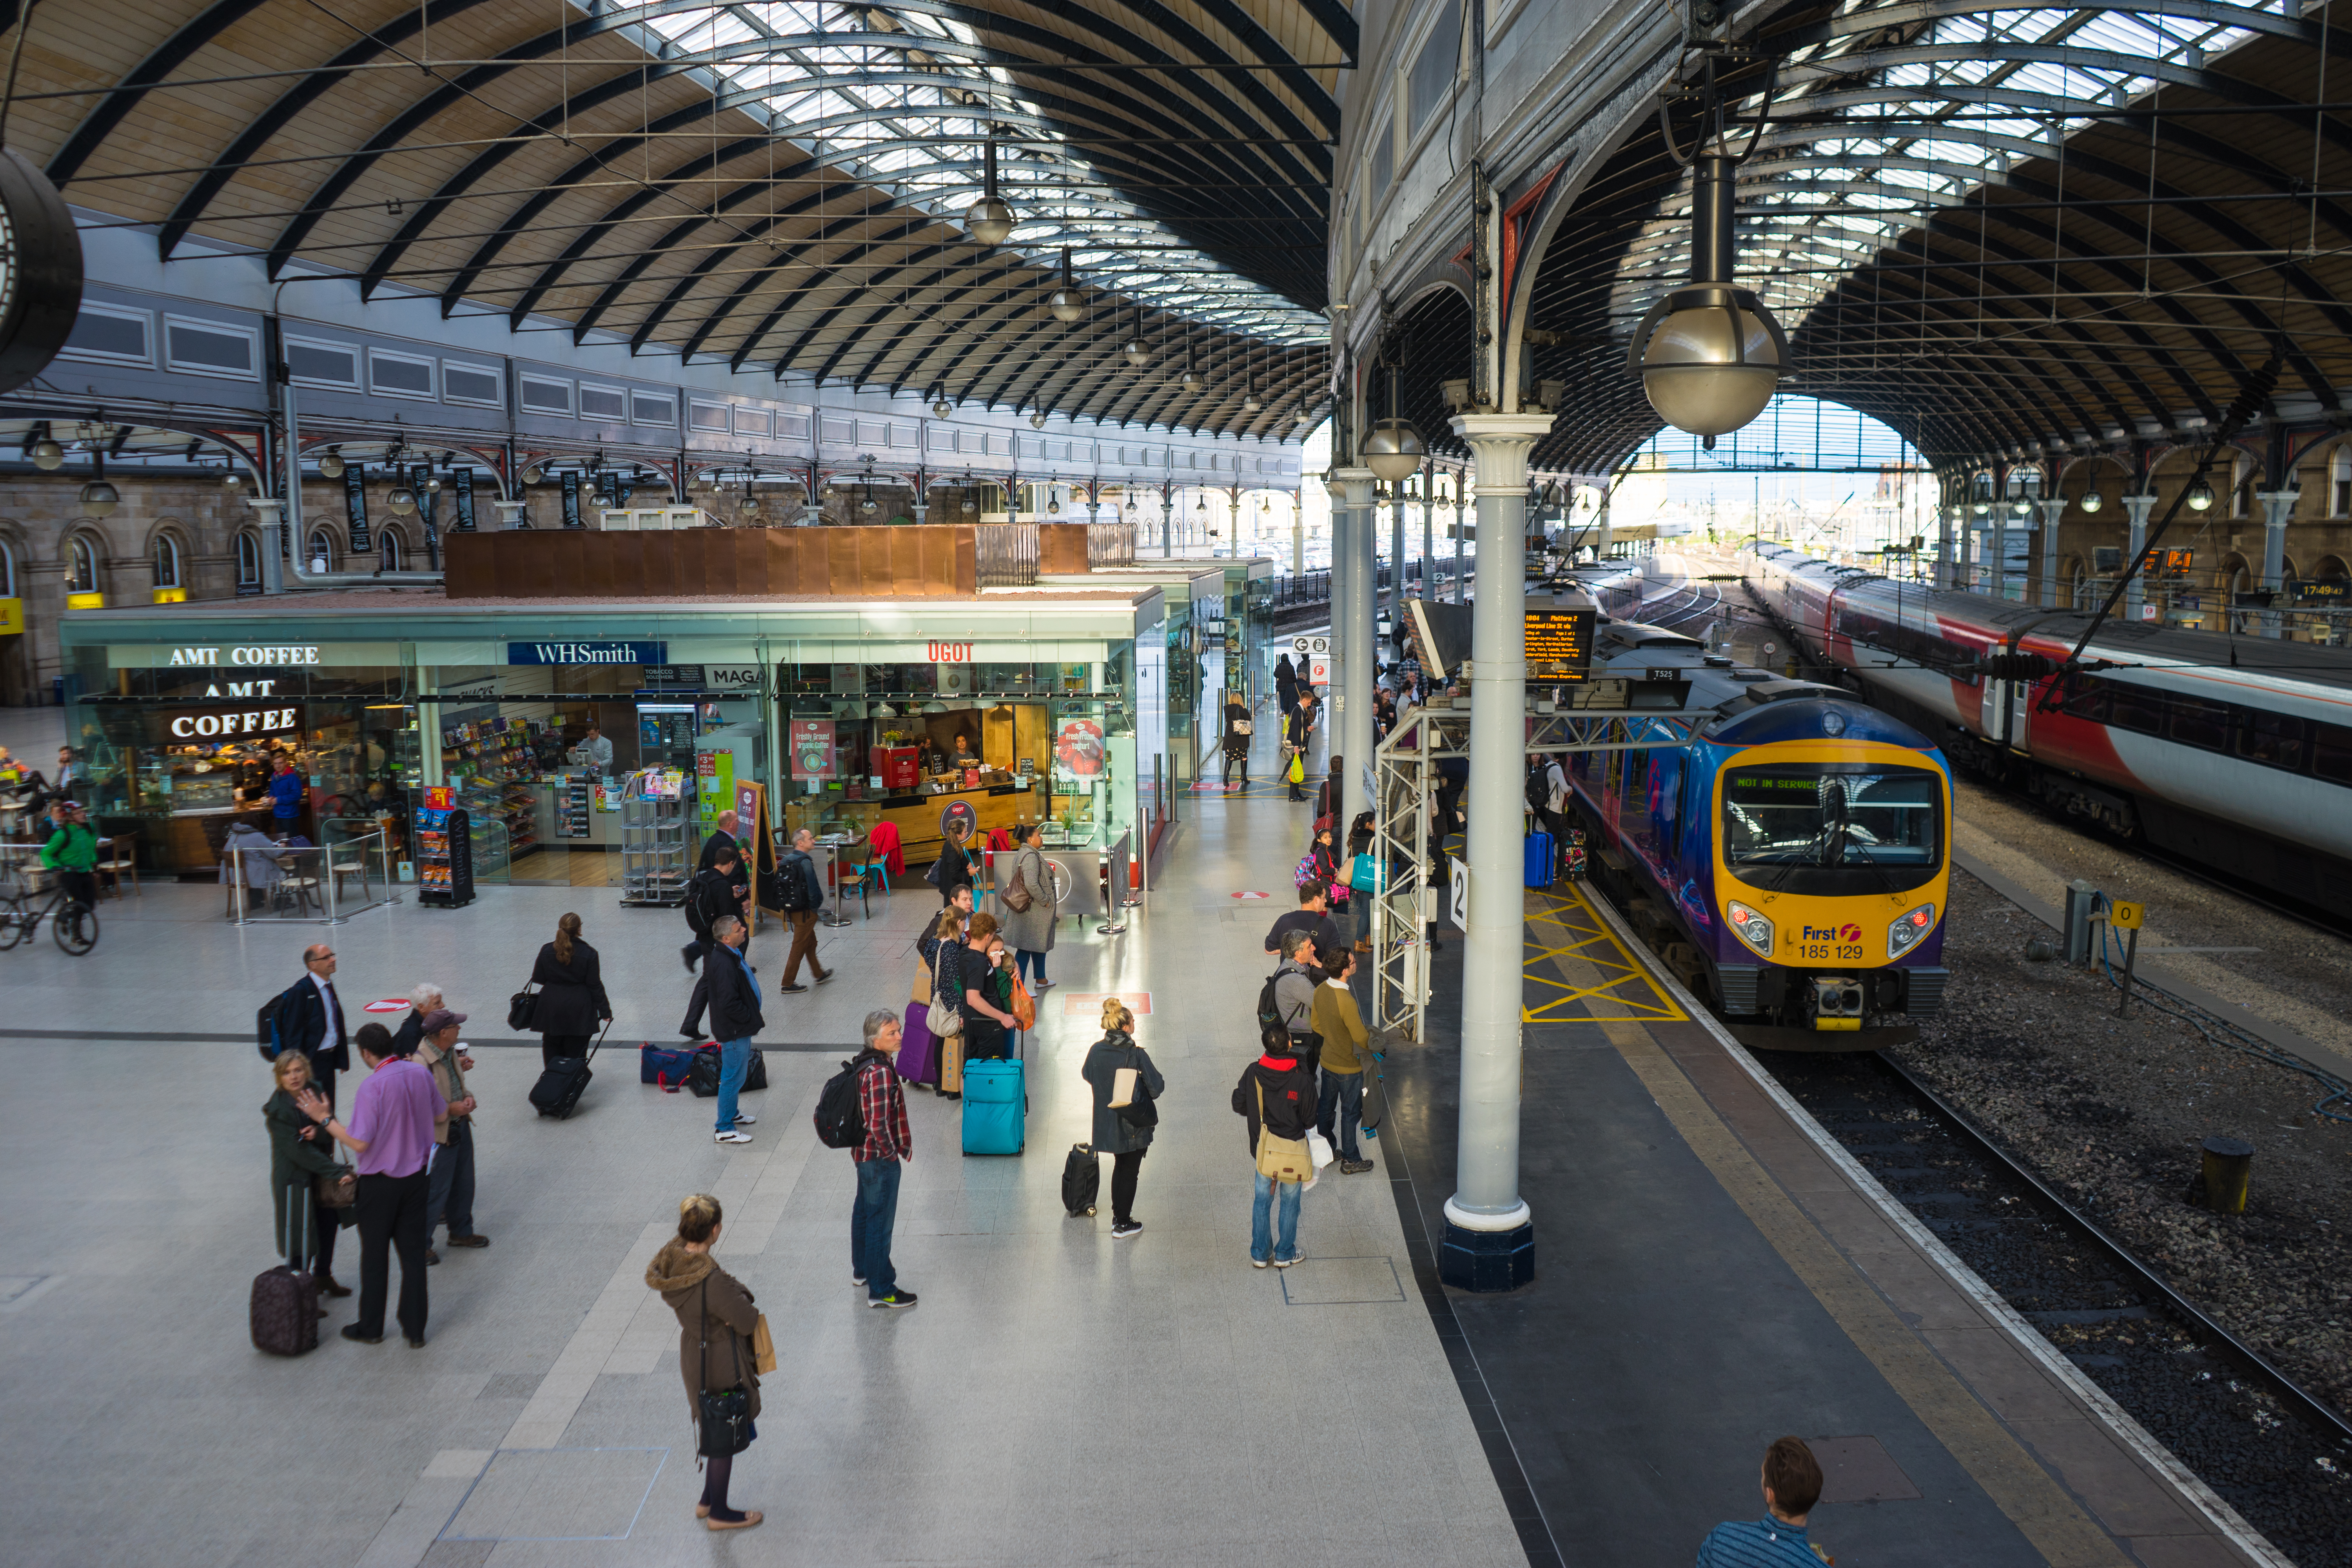 Newcastle Upon Tyne, UK, England - September 15, 2015:  People commuting over the main platform of Newcastle Central station, where a train awaits.